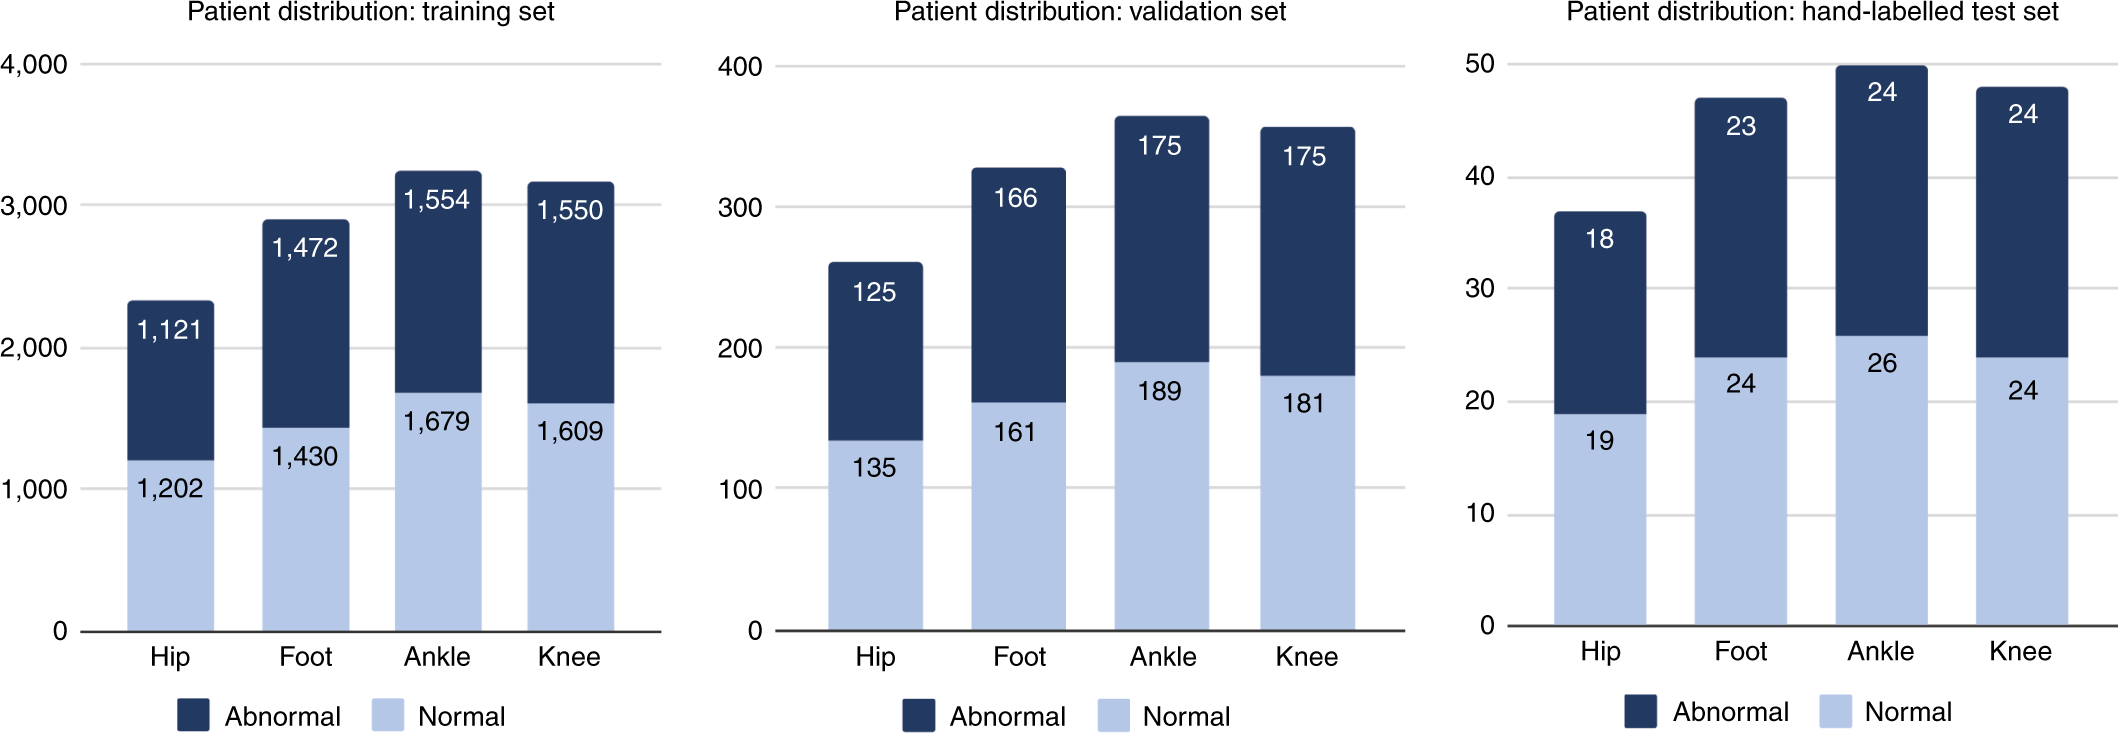 Automated abnormality detection in lower extremity radiographs using d